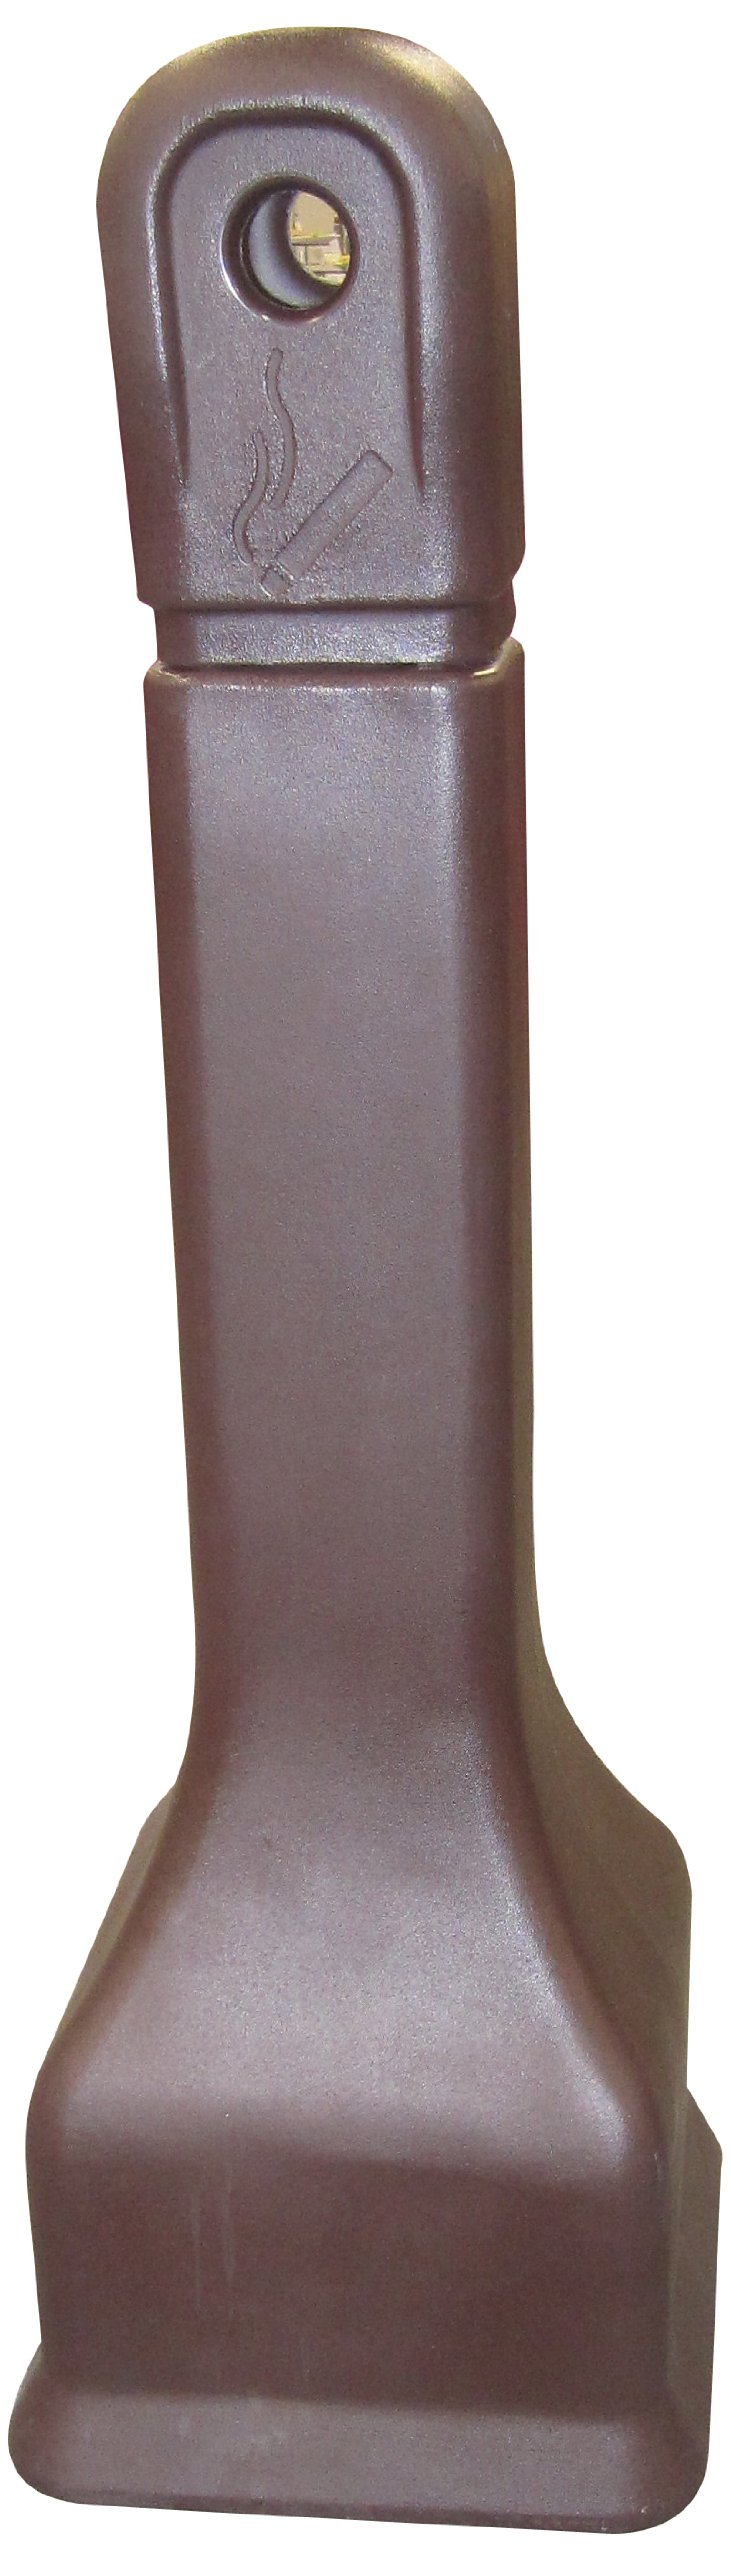 Forte Products 8001327 Plastic Cigarette Disposer Receptacle, 12'' L x 12'' W x 39'' H, Brown